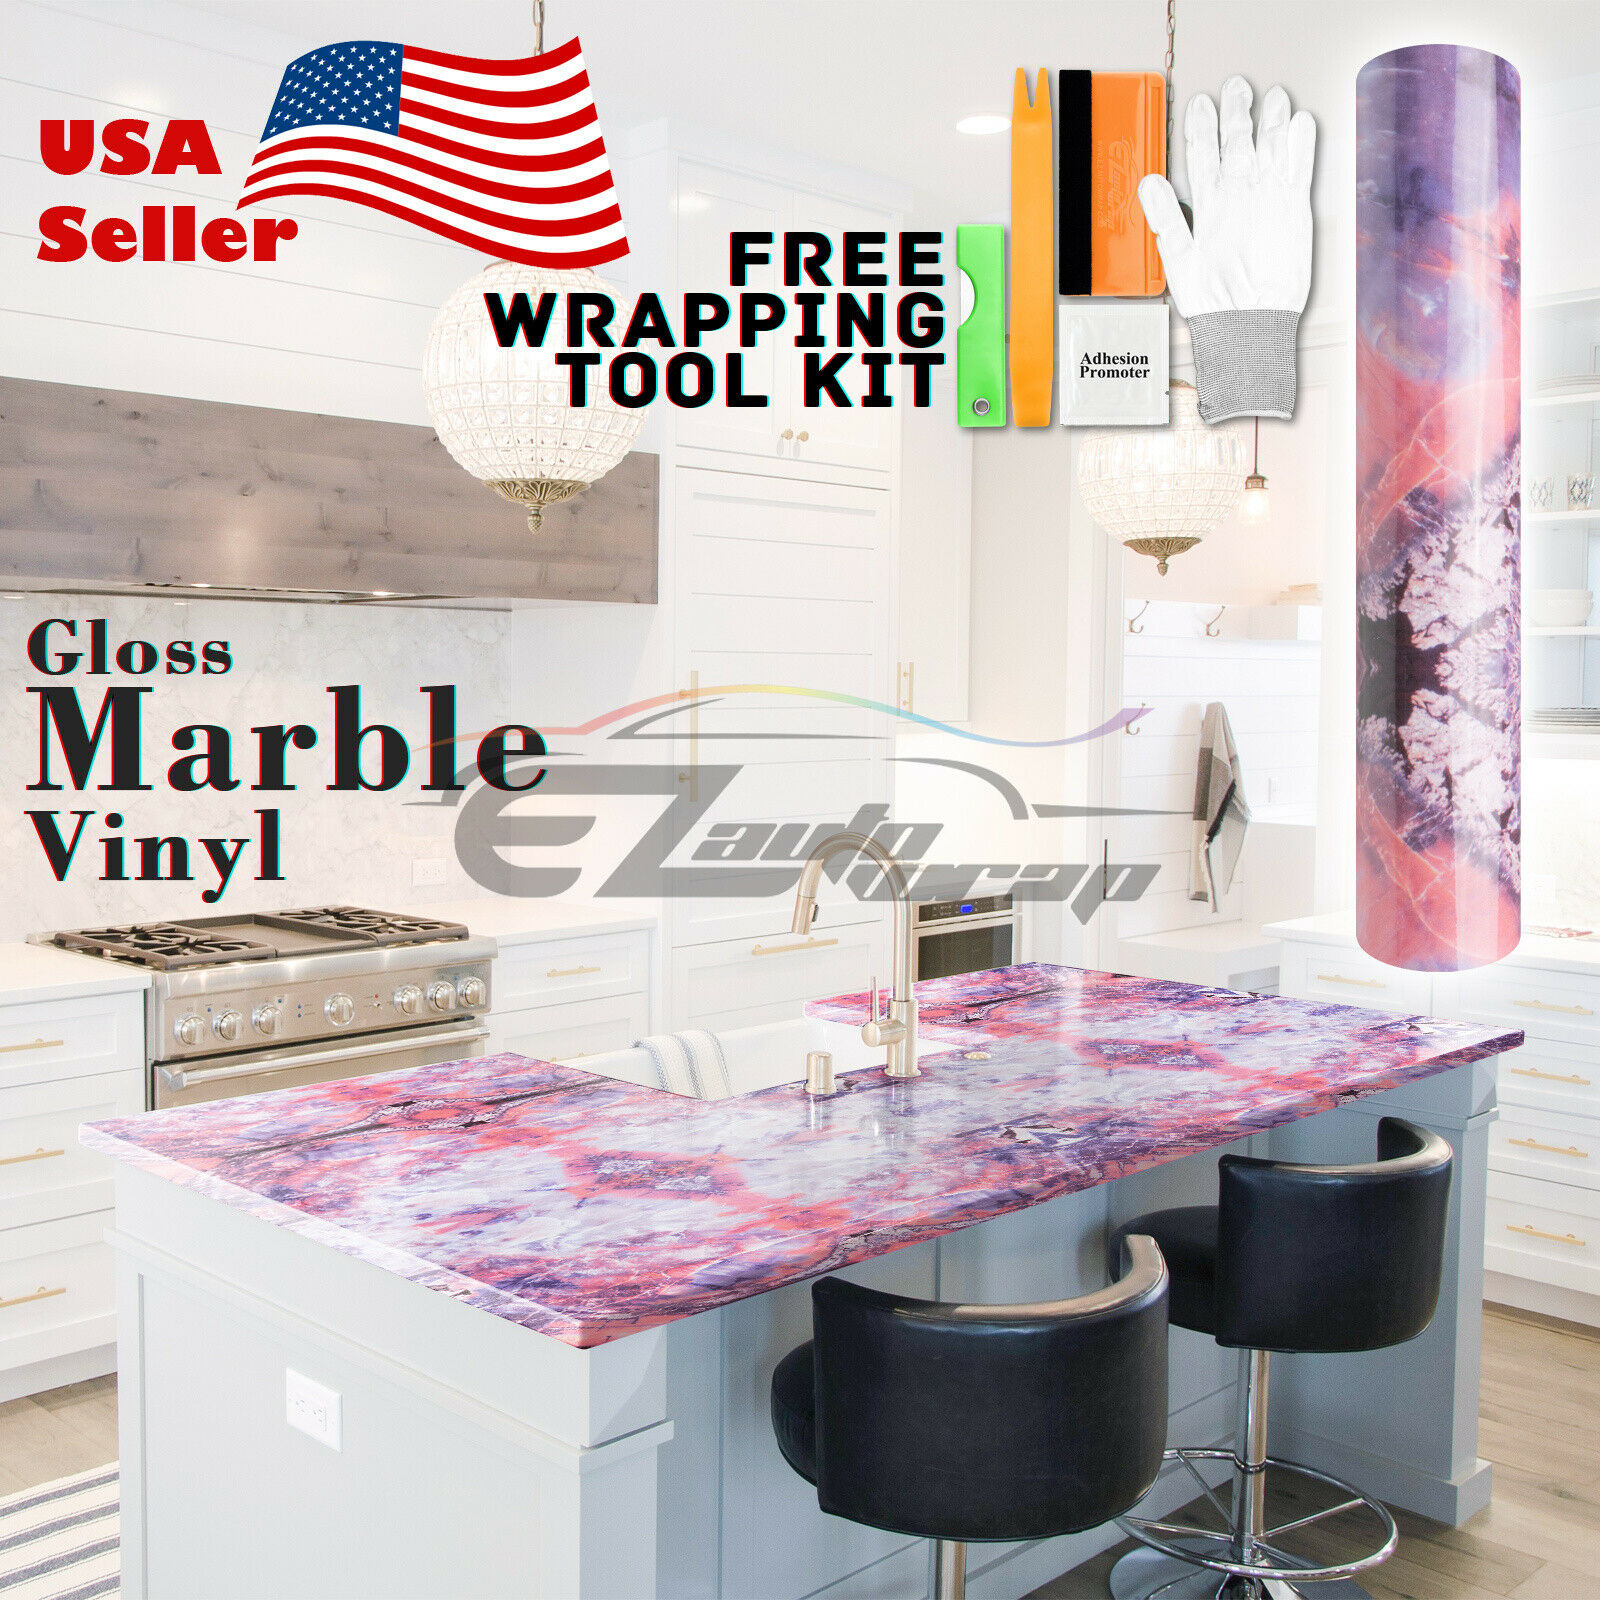 12 X60 1 X5 Faux Marble Granite Vinyl Furniture Wrap Roll Home Decor Cover 04 For Sale Online Ebay